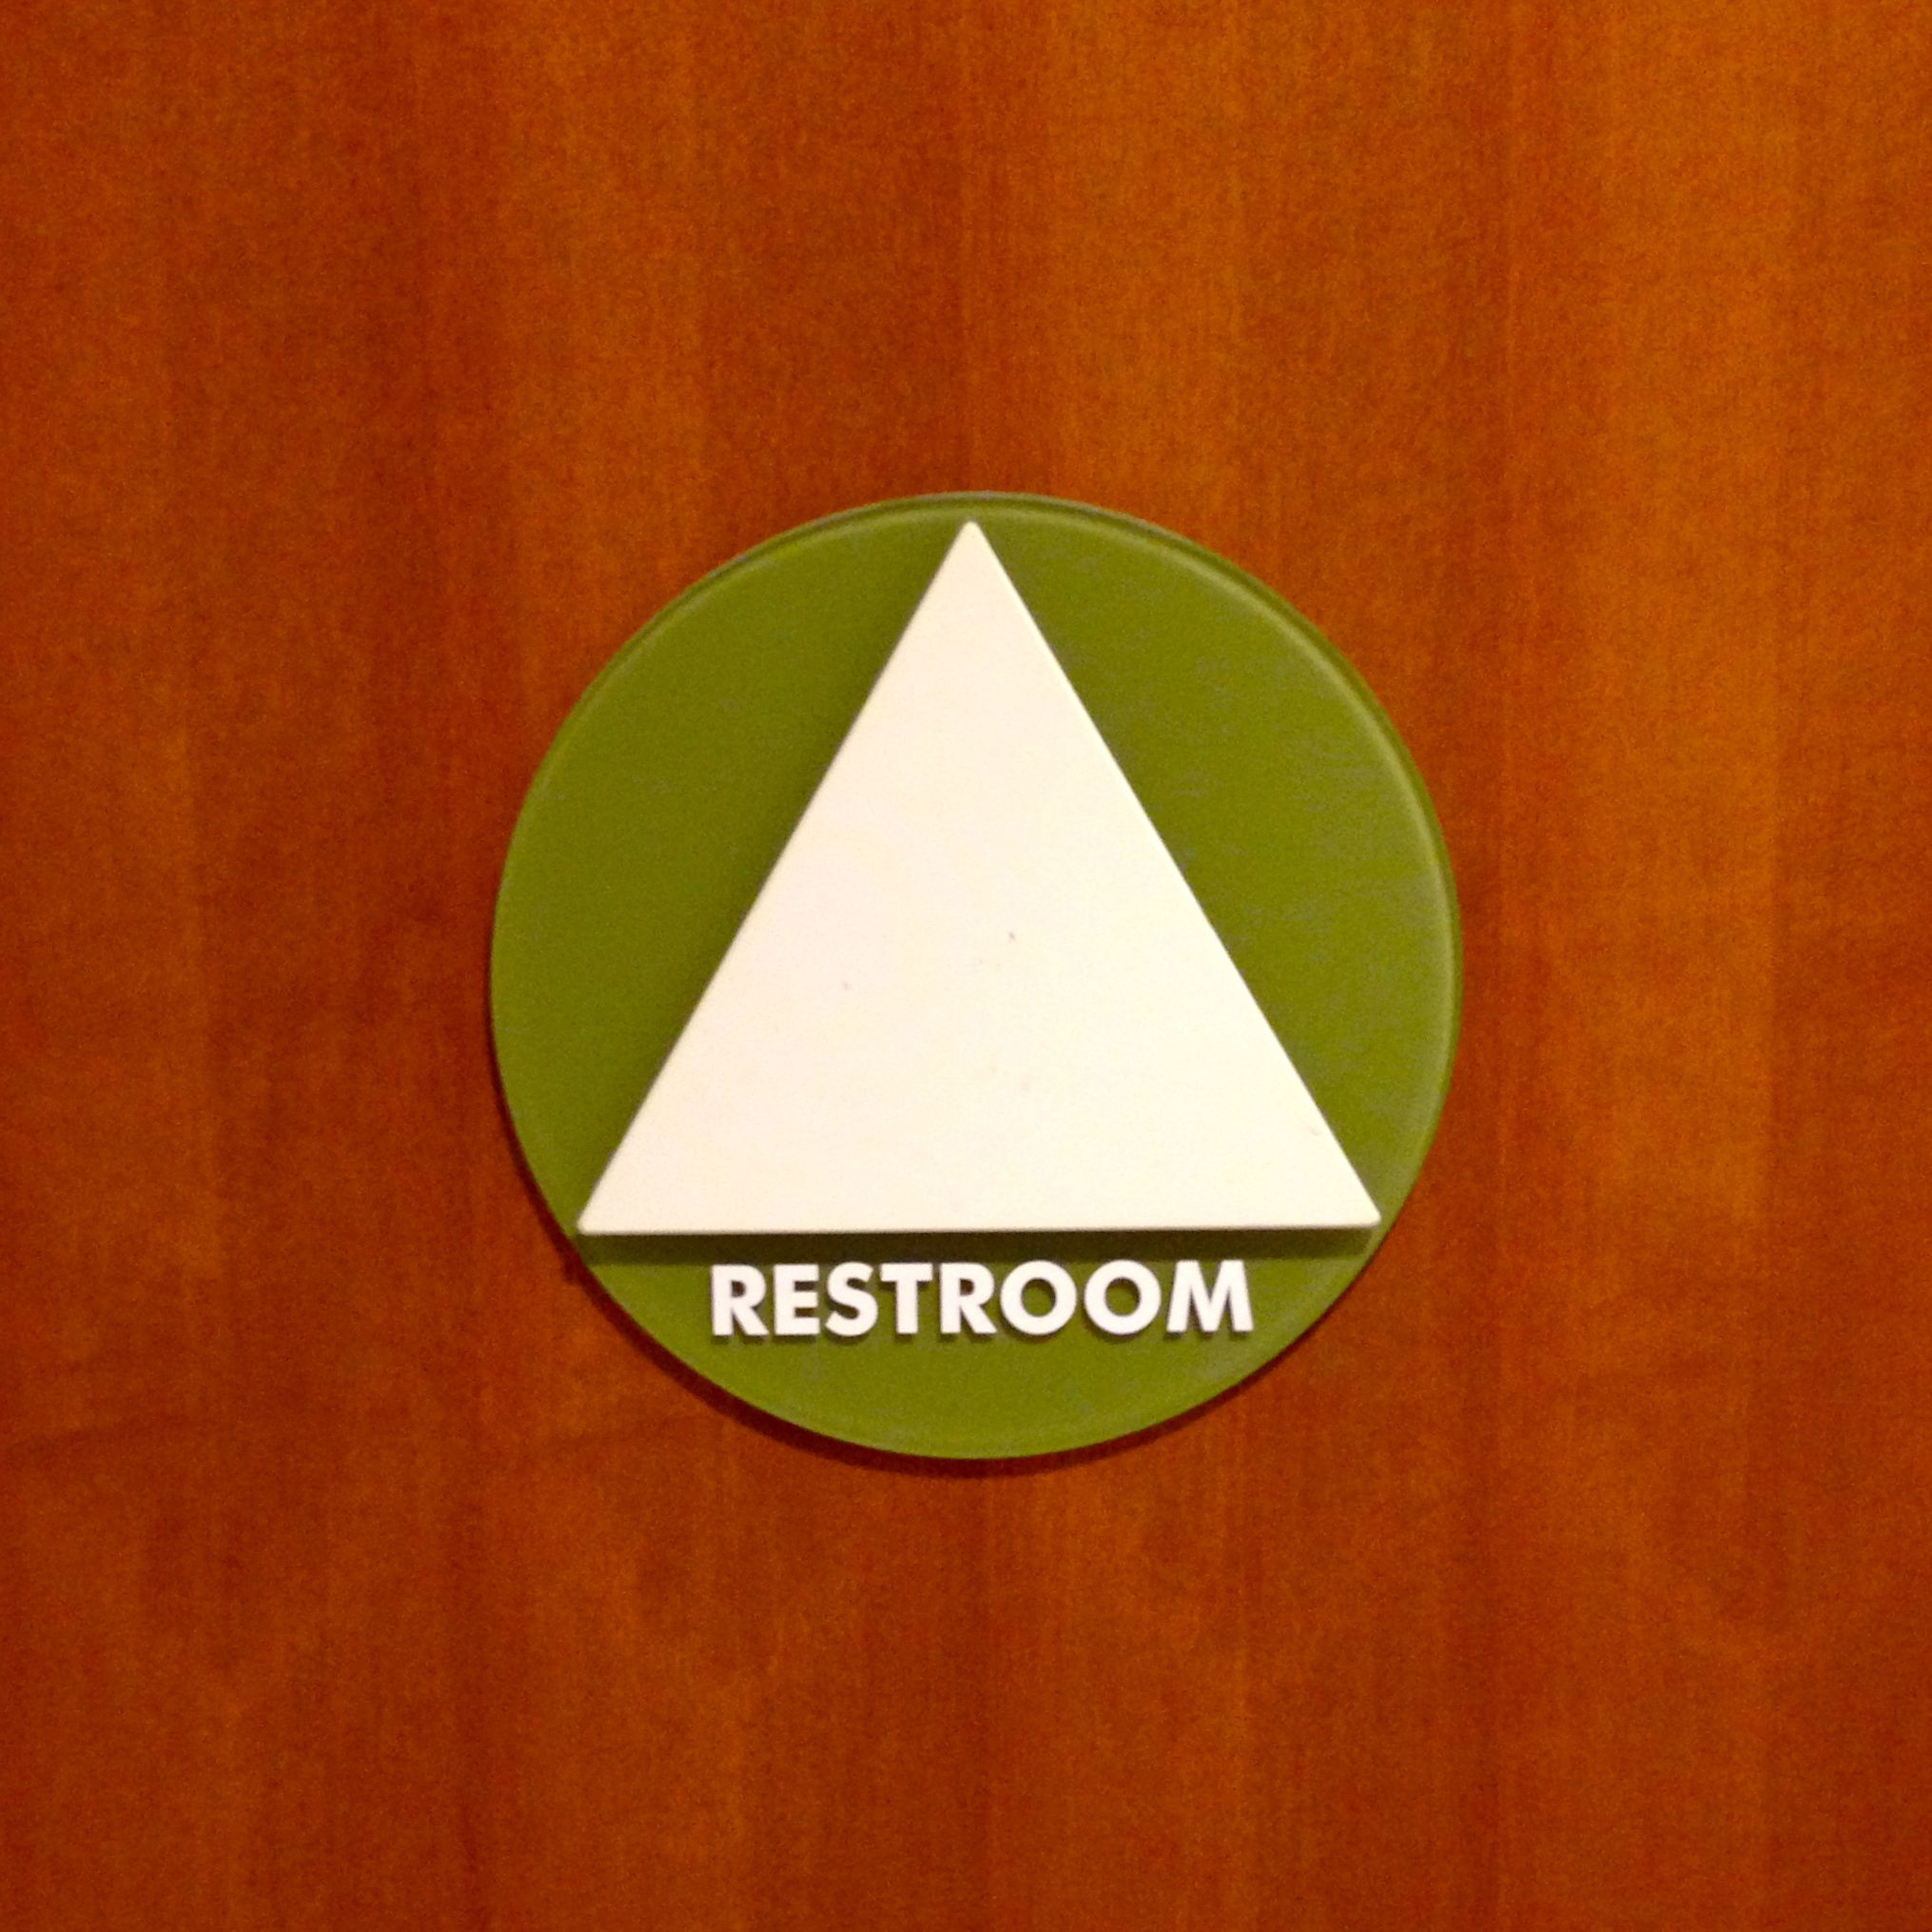 More Information About Gender Inclusive Restrooms